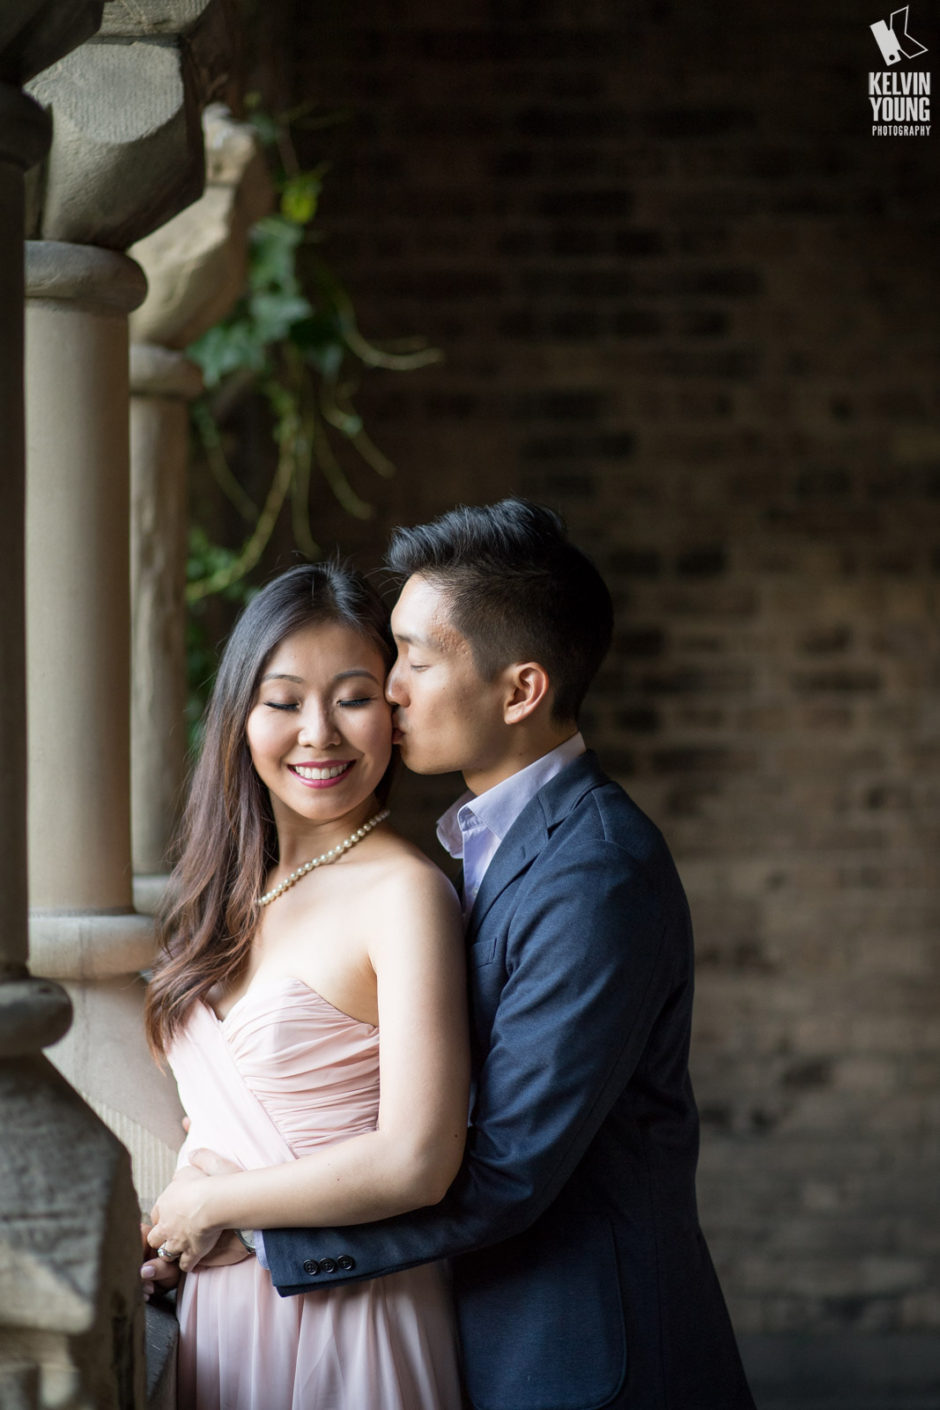 kelvin-young-photography_grace-weyman-toronto-engagement-photos_012